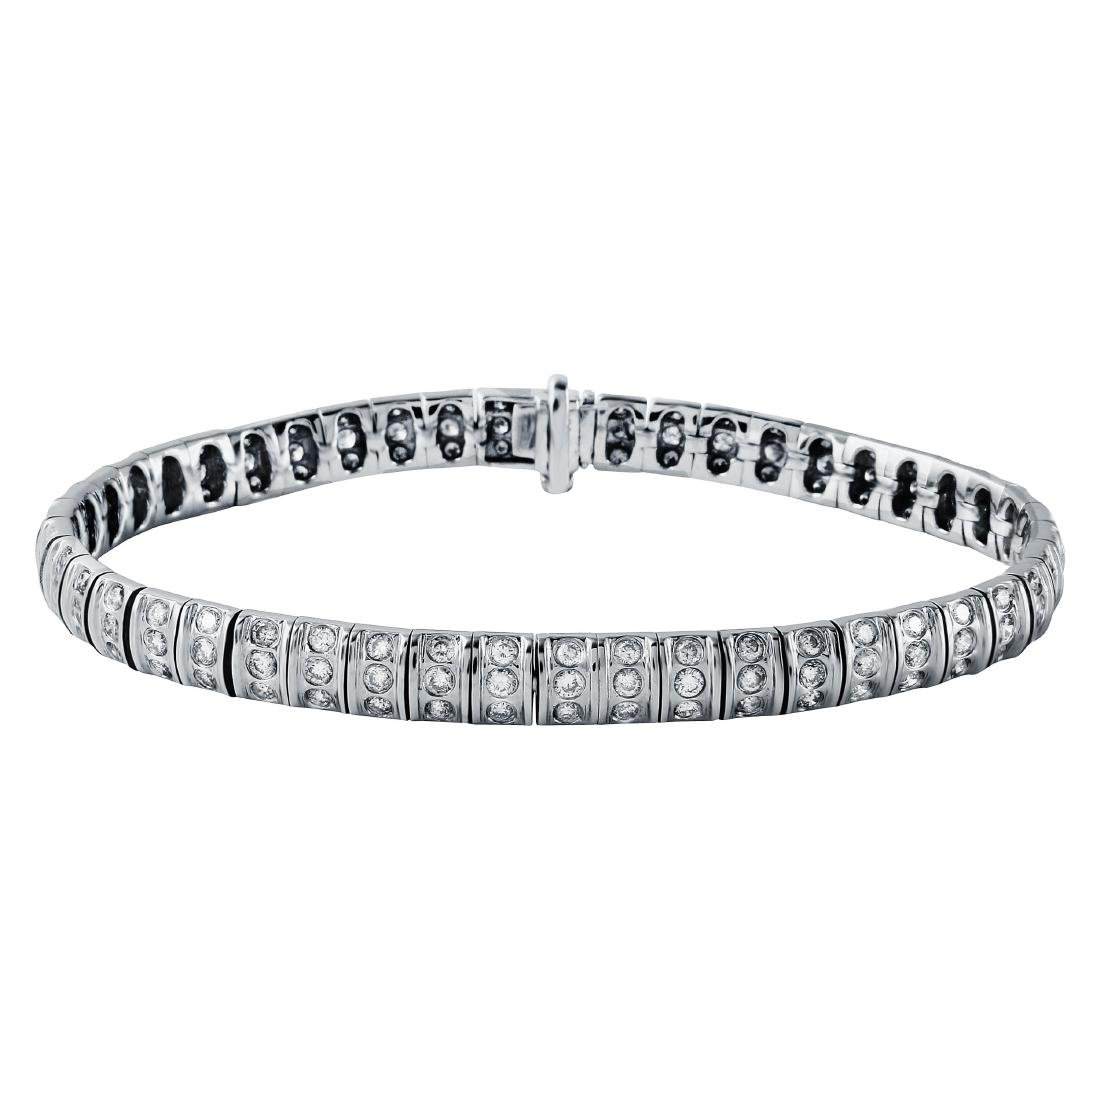 14KT White Gold Diamond Bracelet